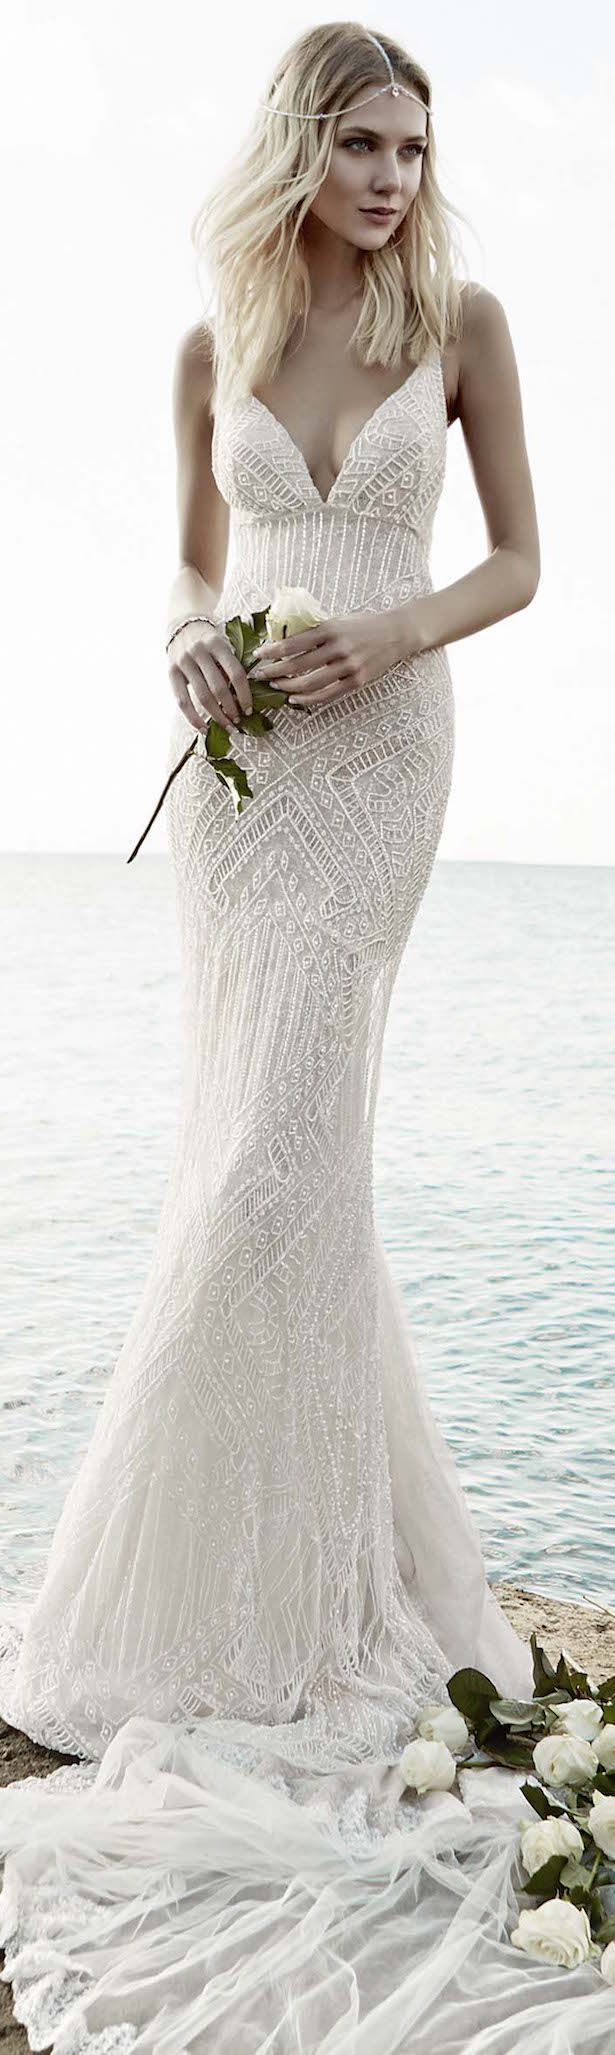 best vestidos de novia images on pinterest wedding dress